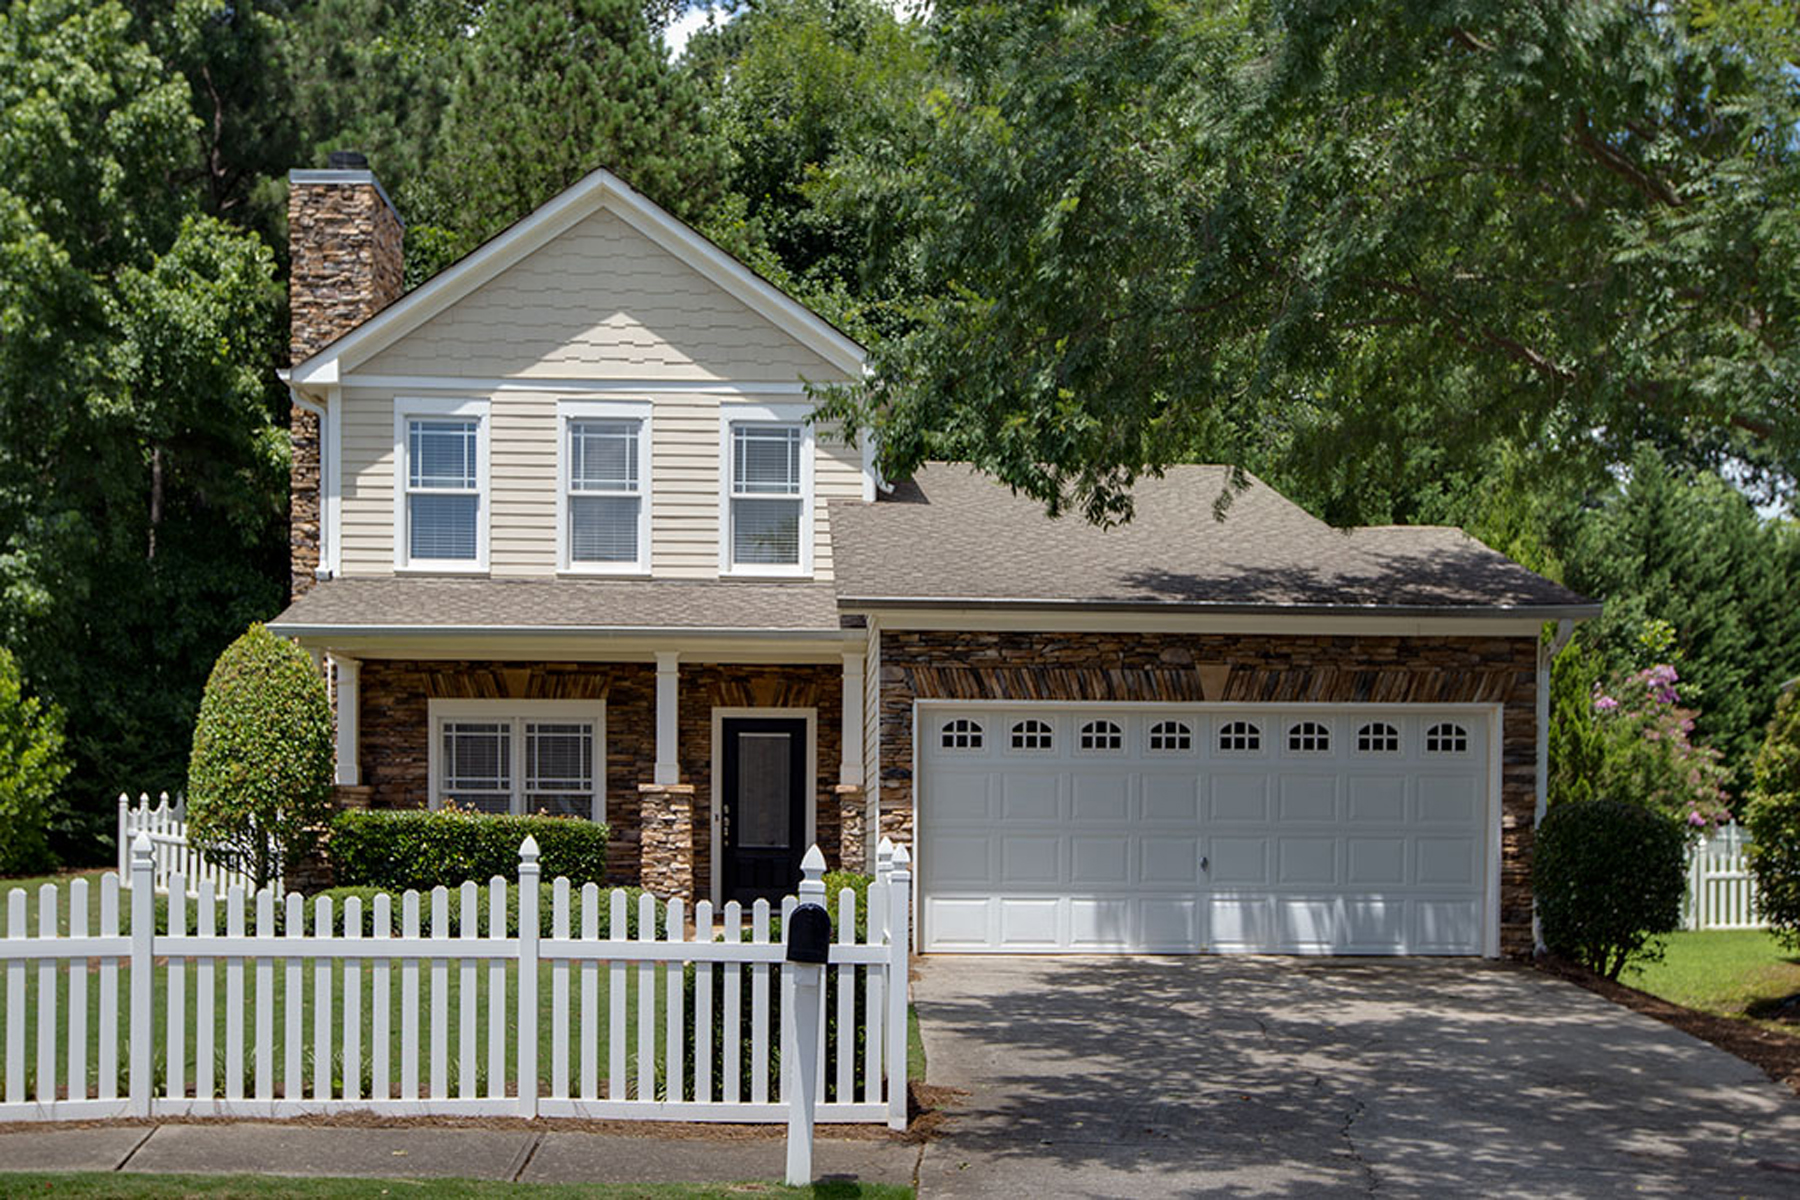 Single Family Home for Sale at Live Americana 3545 Old Towne Ln Cumming, Georgia 30040 United States